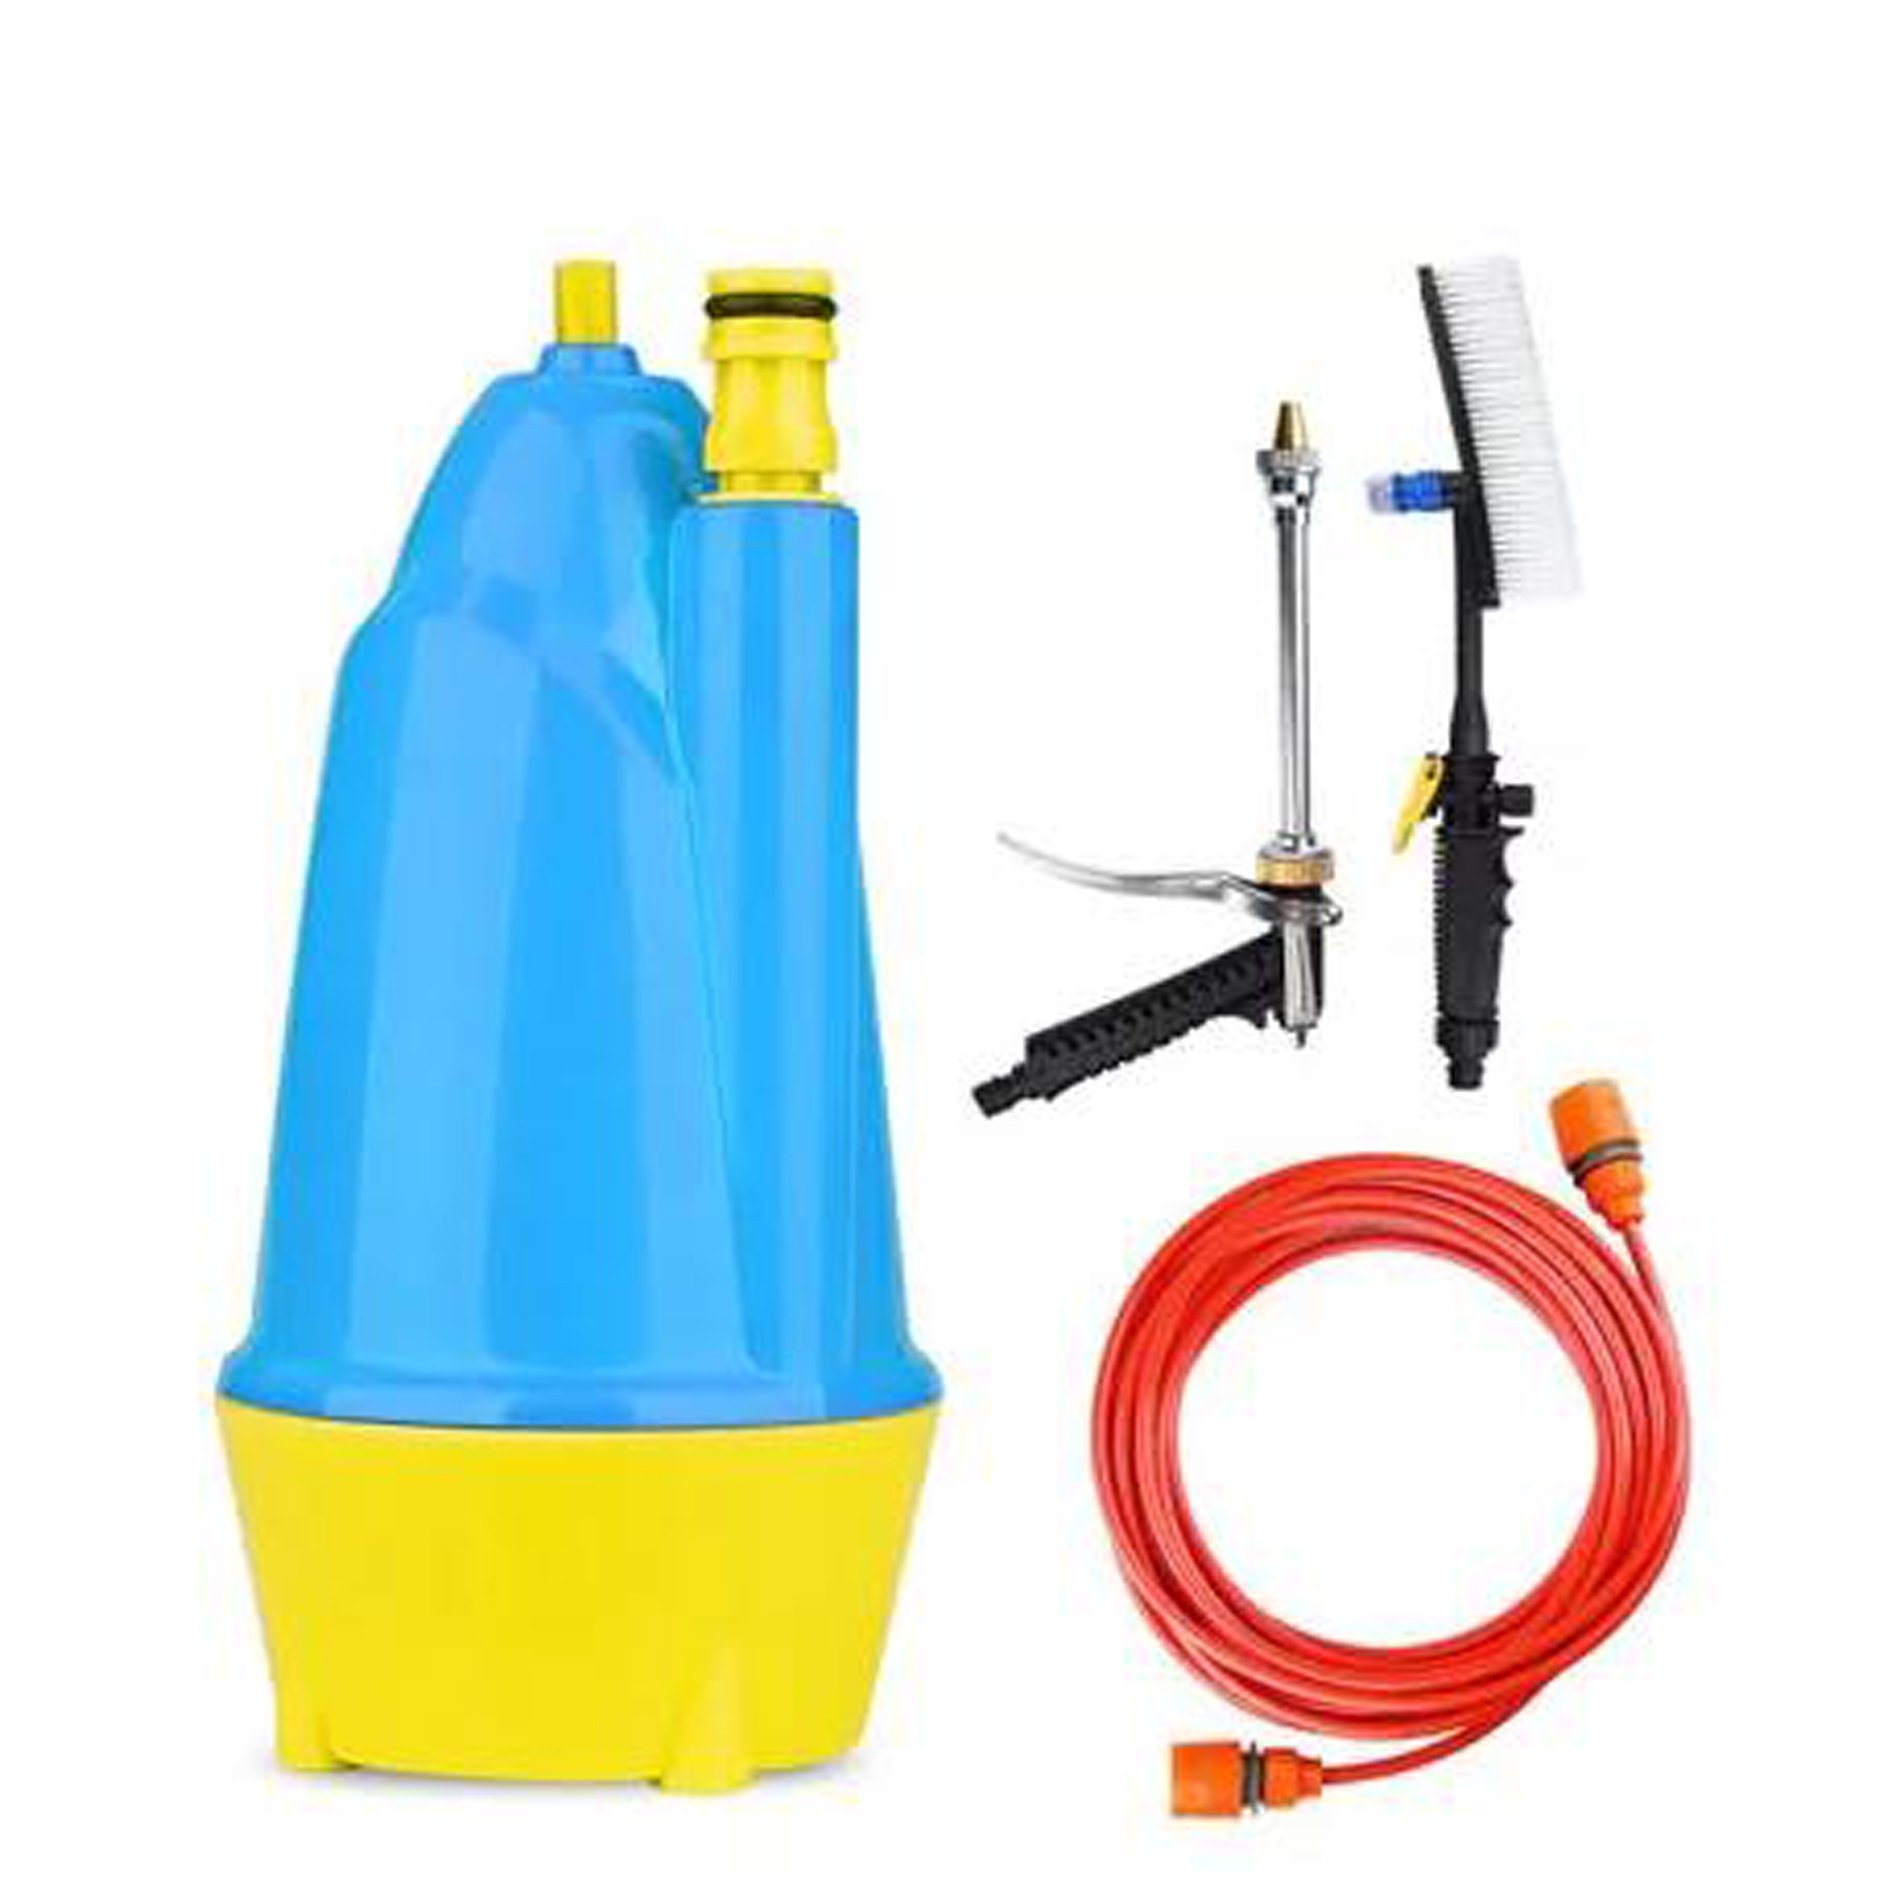 60W ABS Car Wash Pump - BLUE by IDS Home (Image #1)